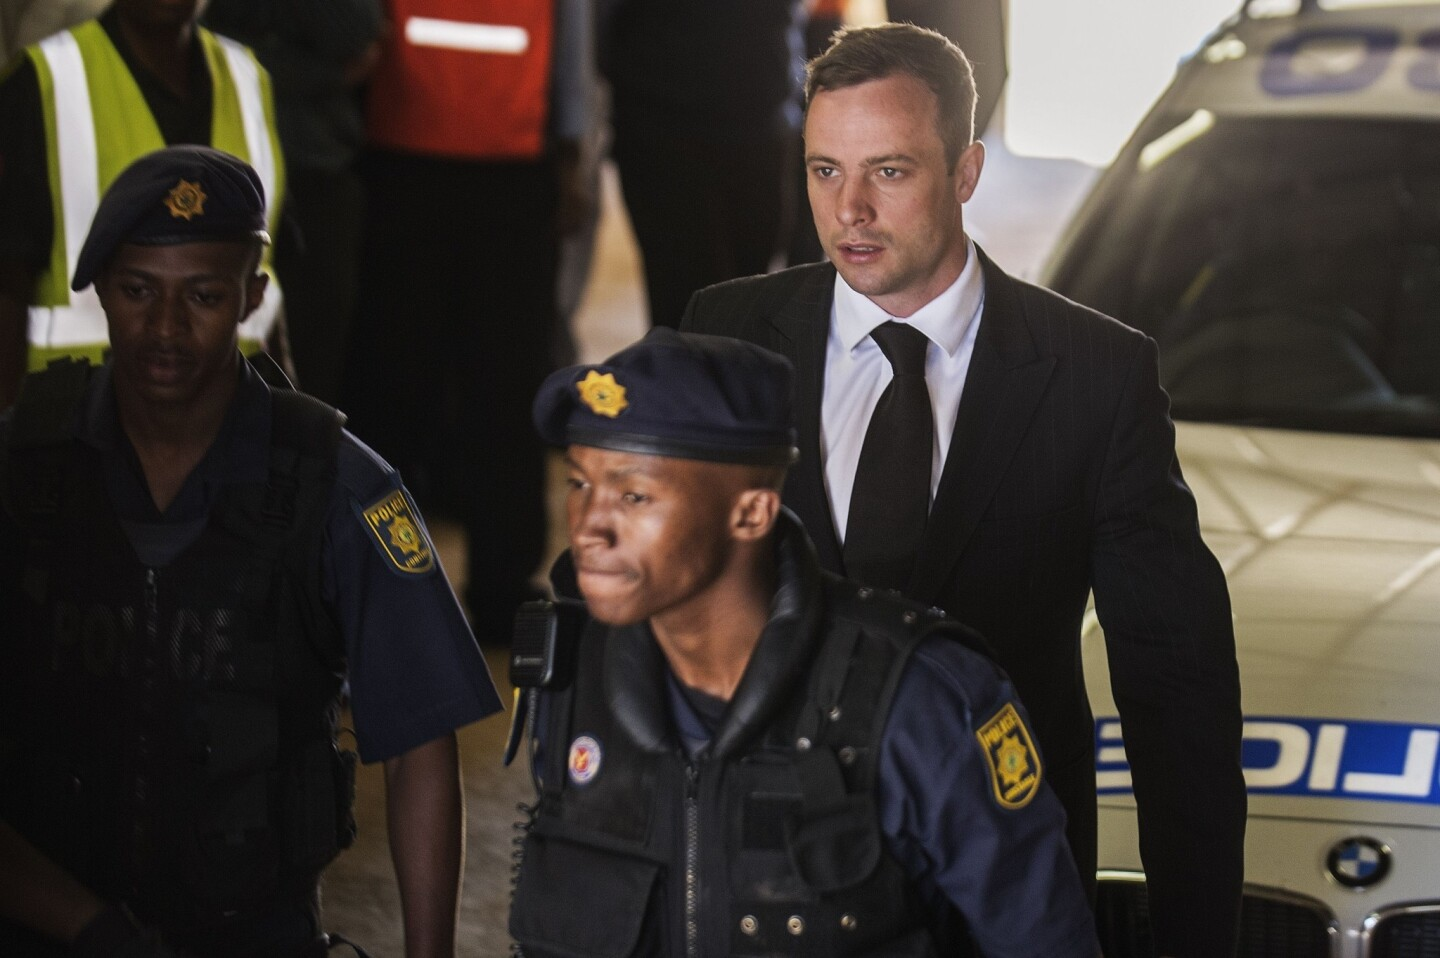 Oscar Pistorius is escorted to a police vehicle to be transported to prison after being sentenced to five years for the negligent killing of his girlfriend Reeva Steenkamp in 2013.